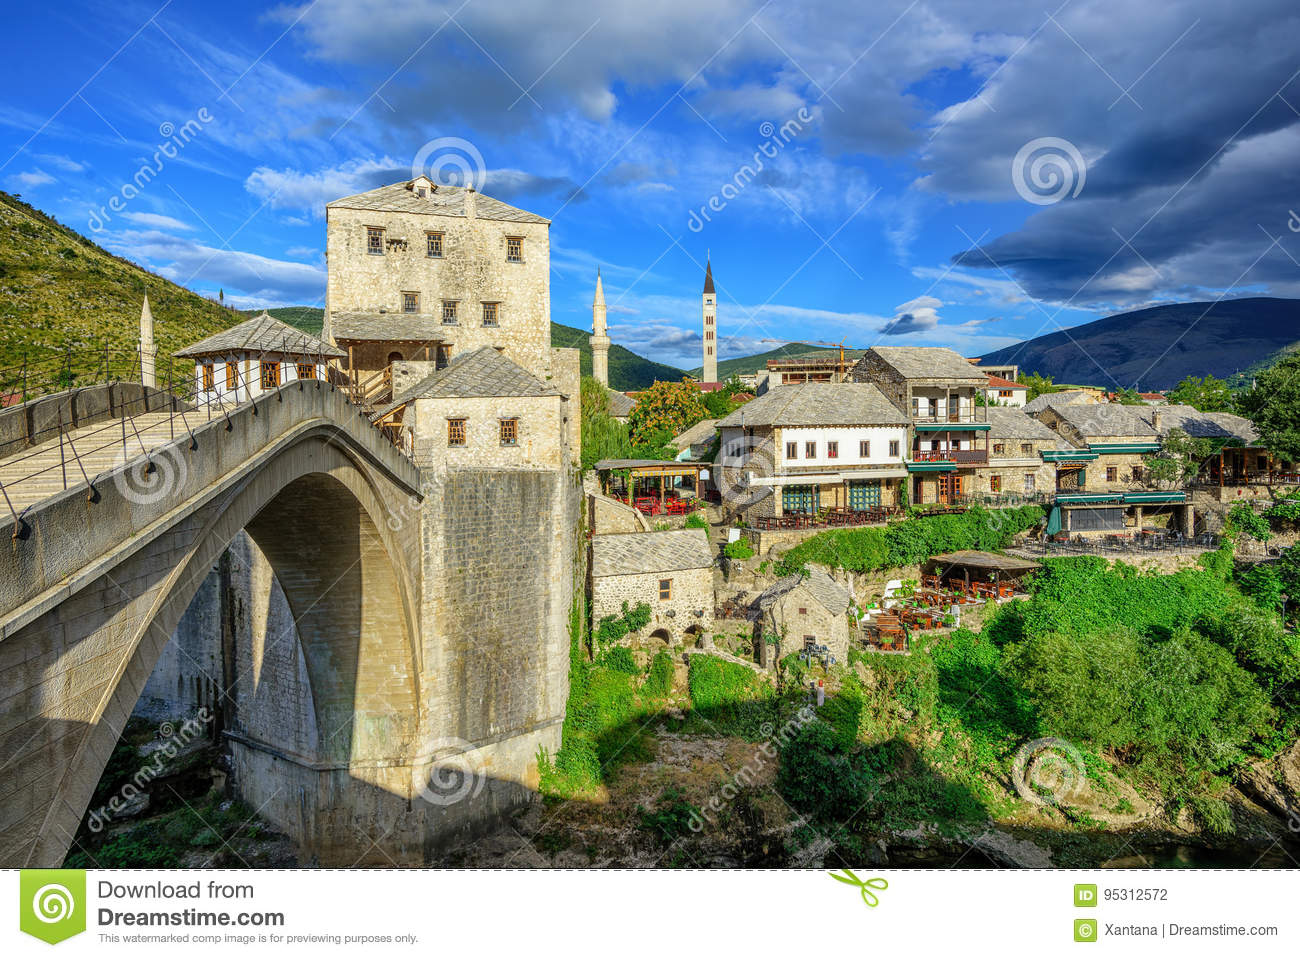 Old town and bridge in Mostar, Bosnia and Herzegovina